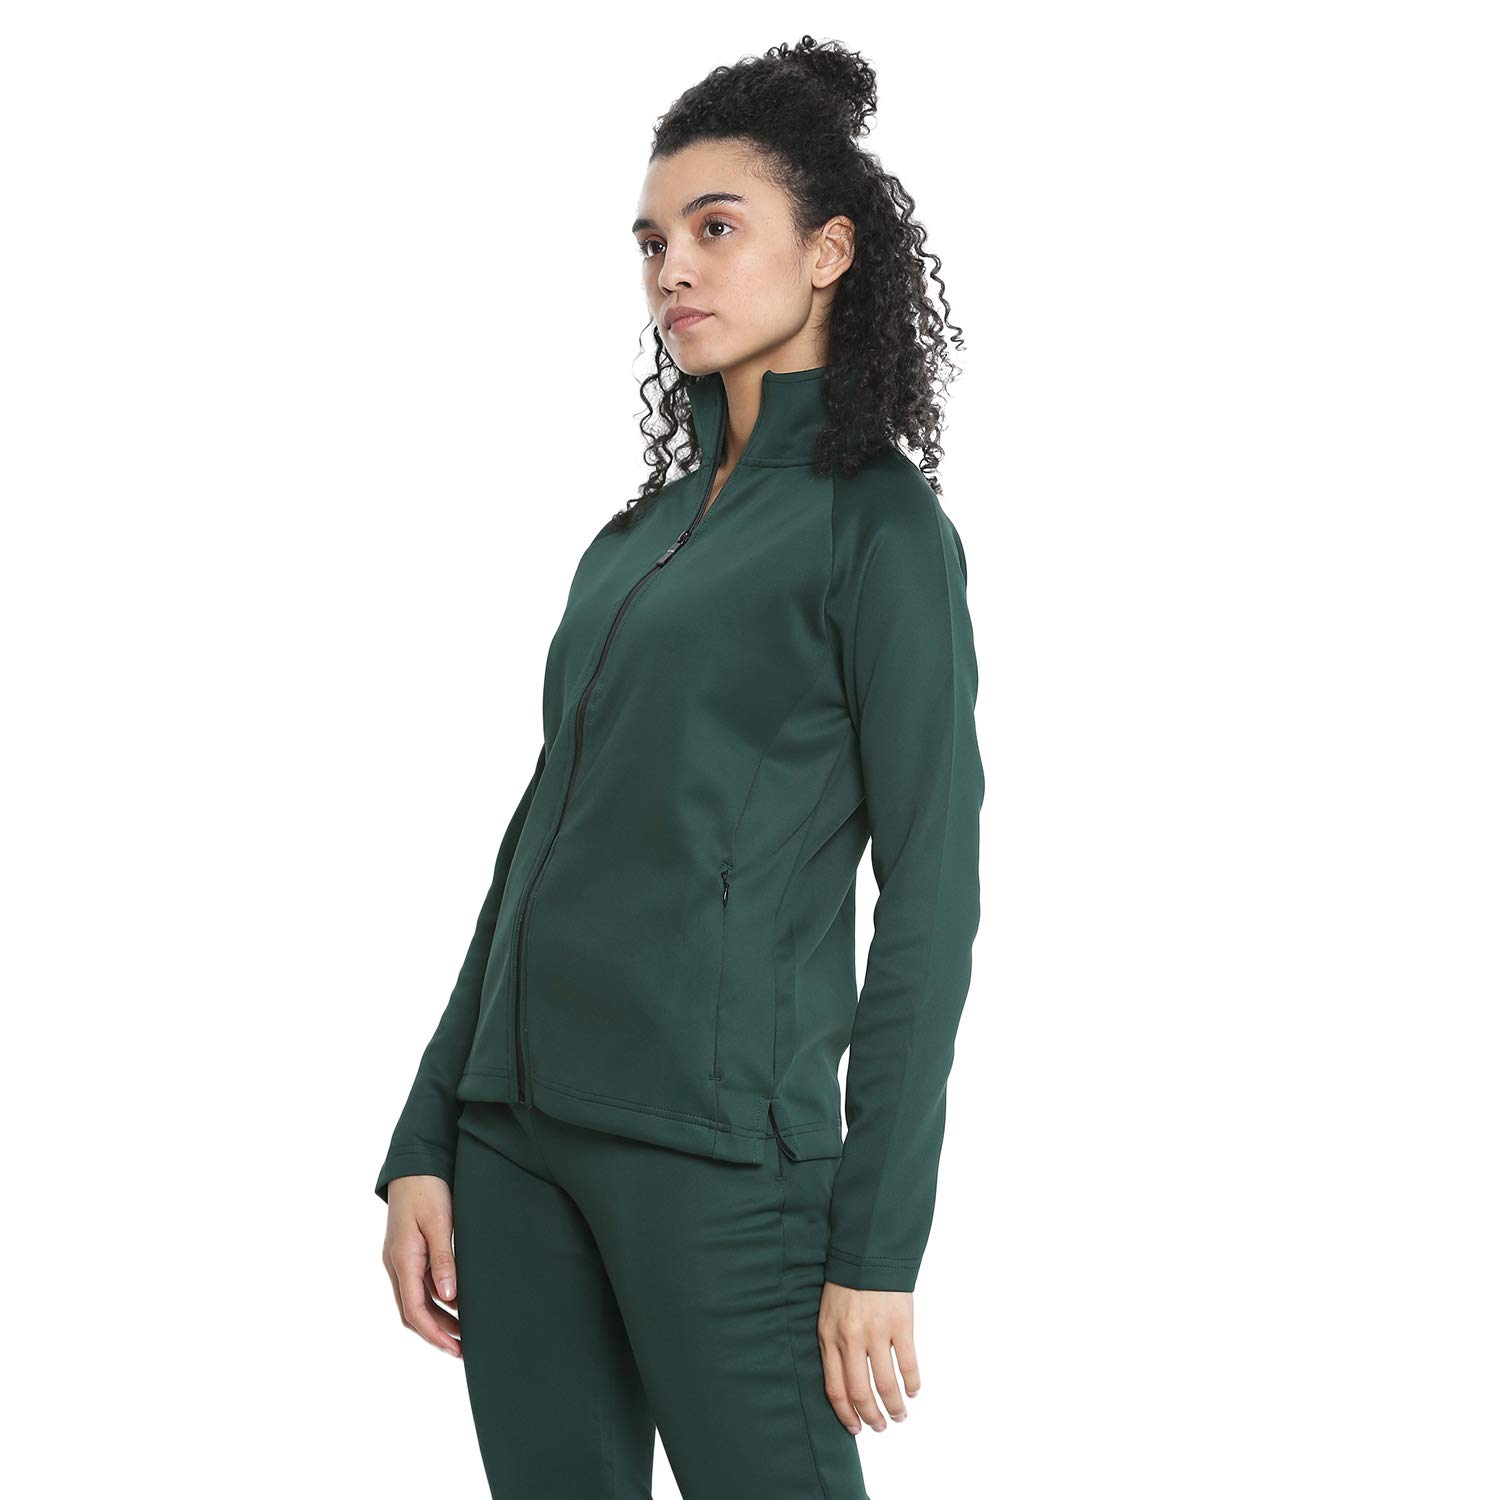 6e6927418a0 CHKOKKO Trendy Women Track Suit Set Gym Sports Tracksuit Combo of Track  Pant Zipper Jacket: Amazon.in: Clothing & Accessories